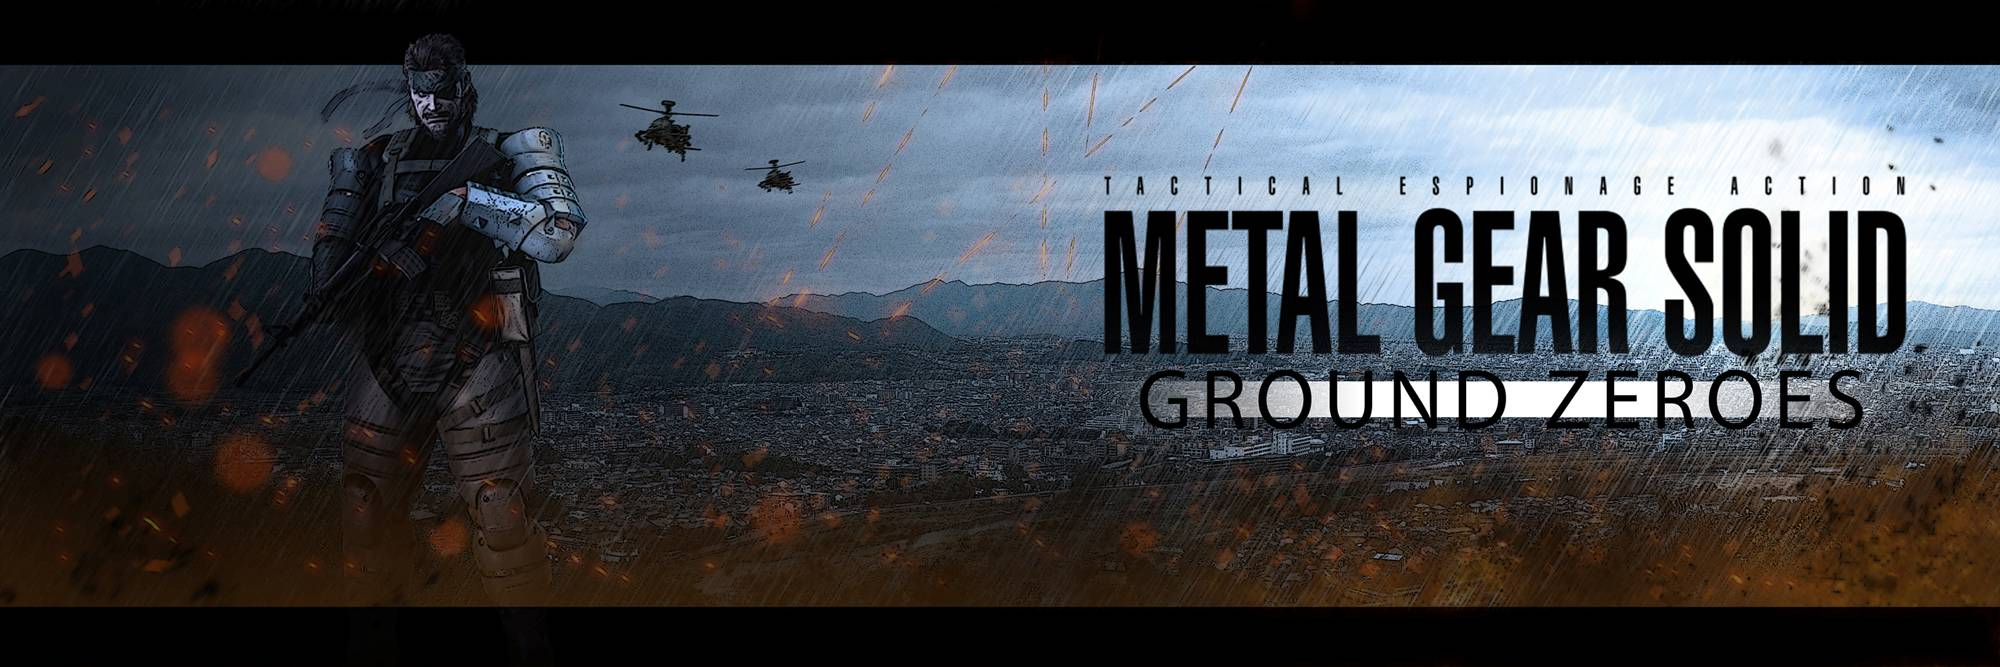 metal gear solid v ground error